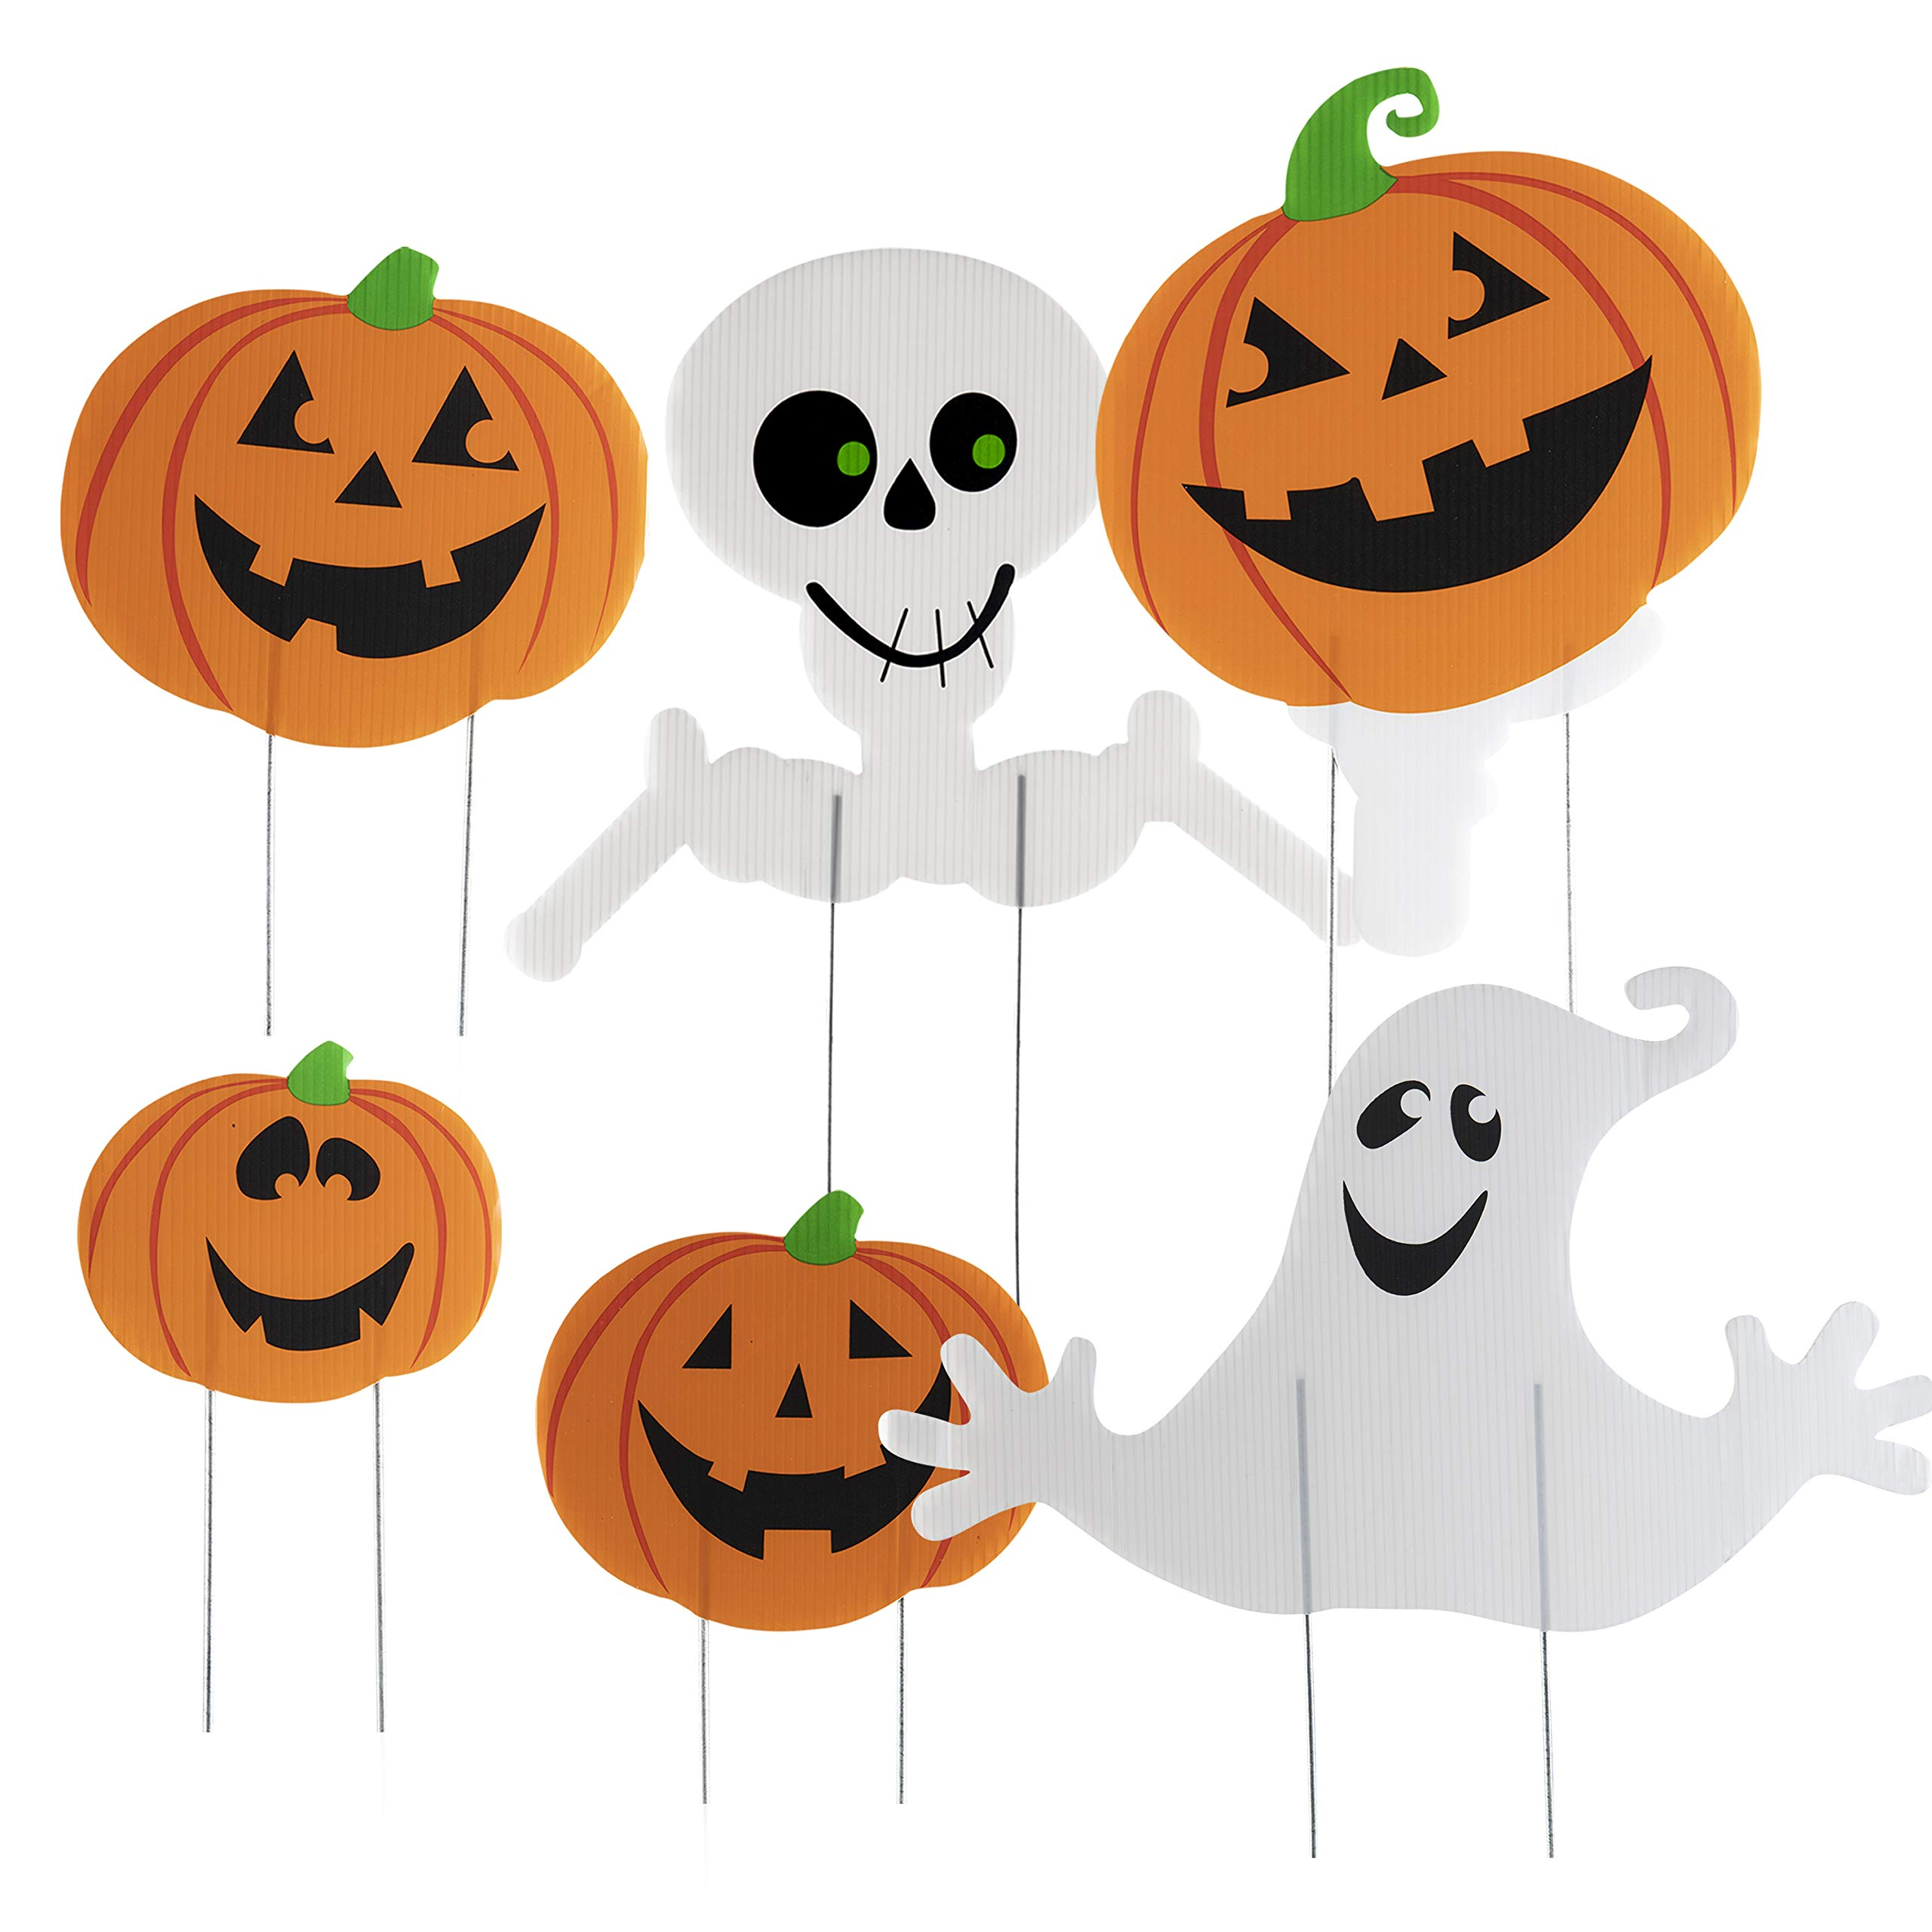 Halloween Decorations Themed 6 Piece Family Friendly Yard Decoration Signs Including 4 Pumpkins 1 Ghost 1 Skeleton Trick or Treat Happy Halloween